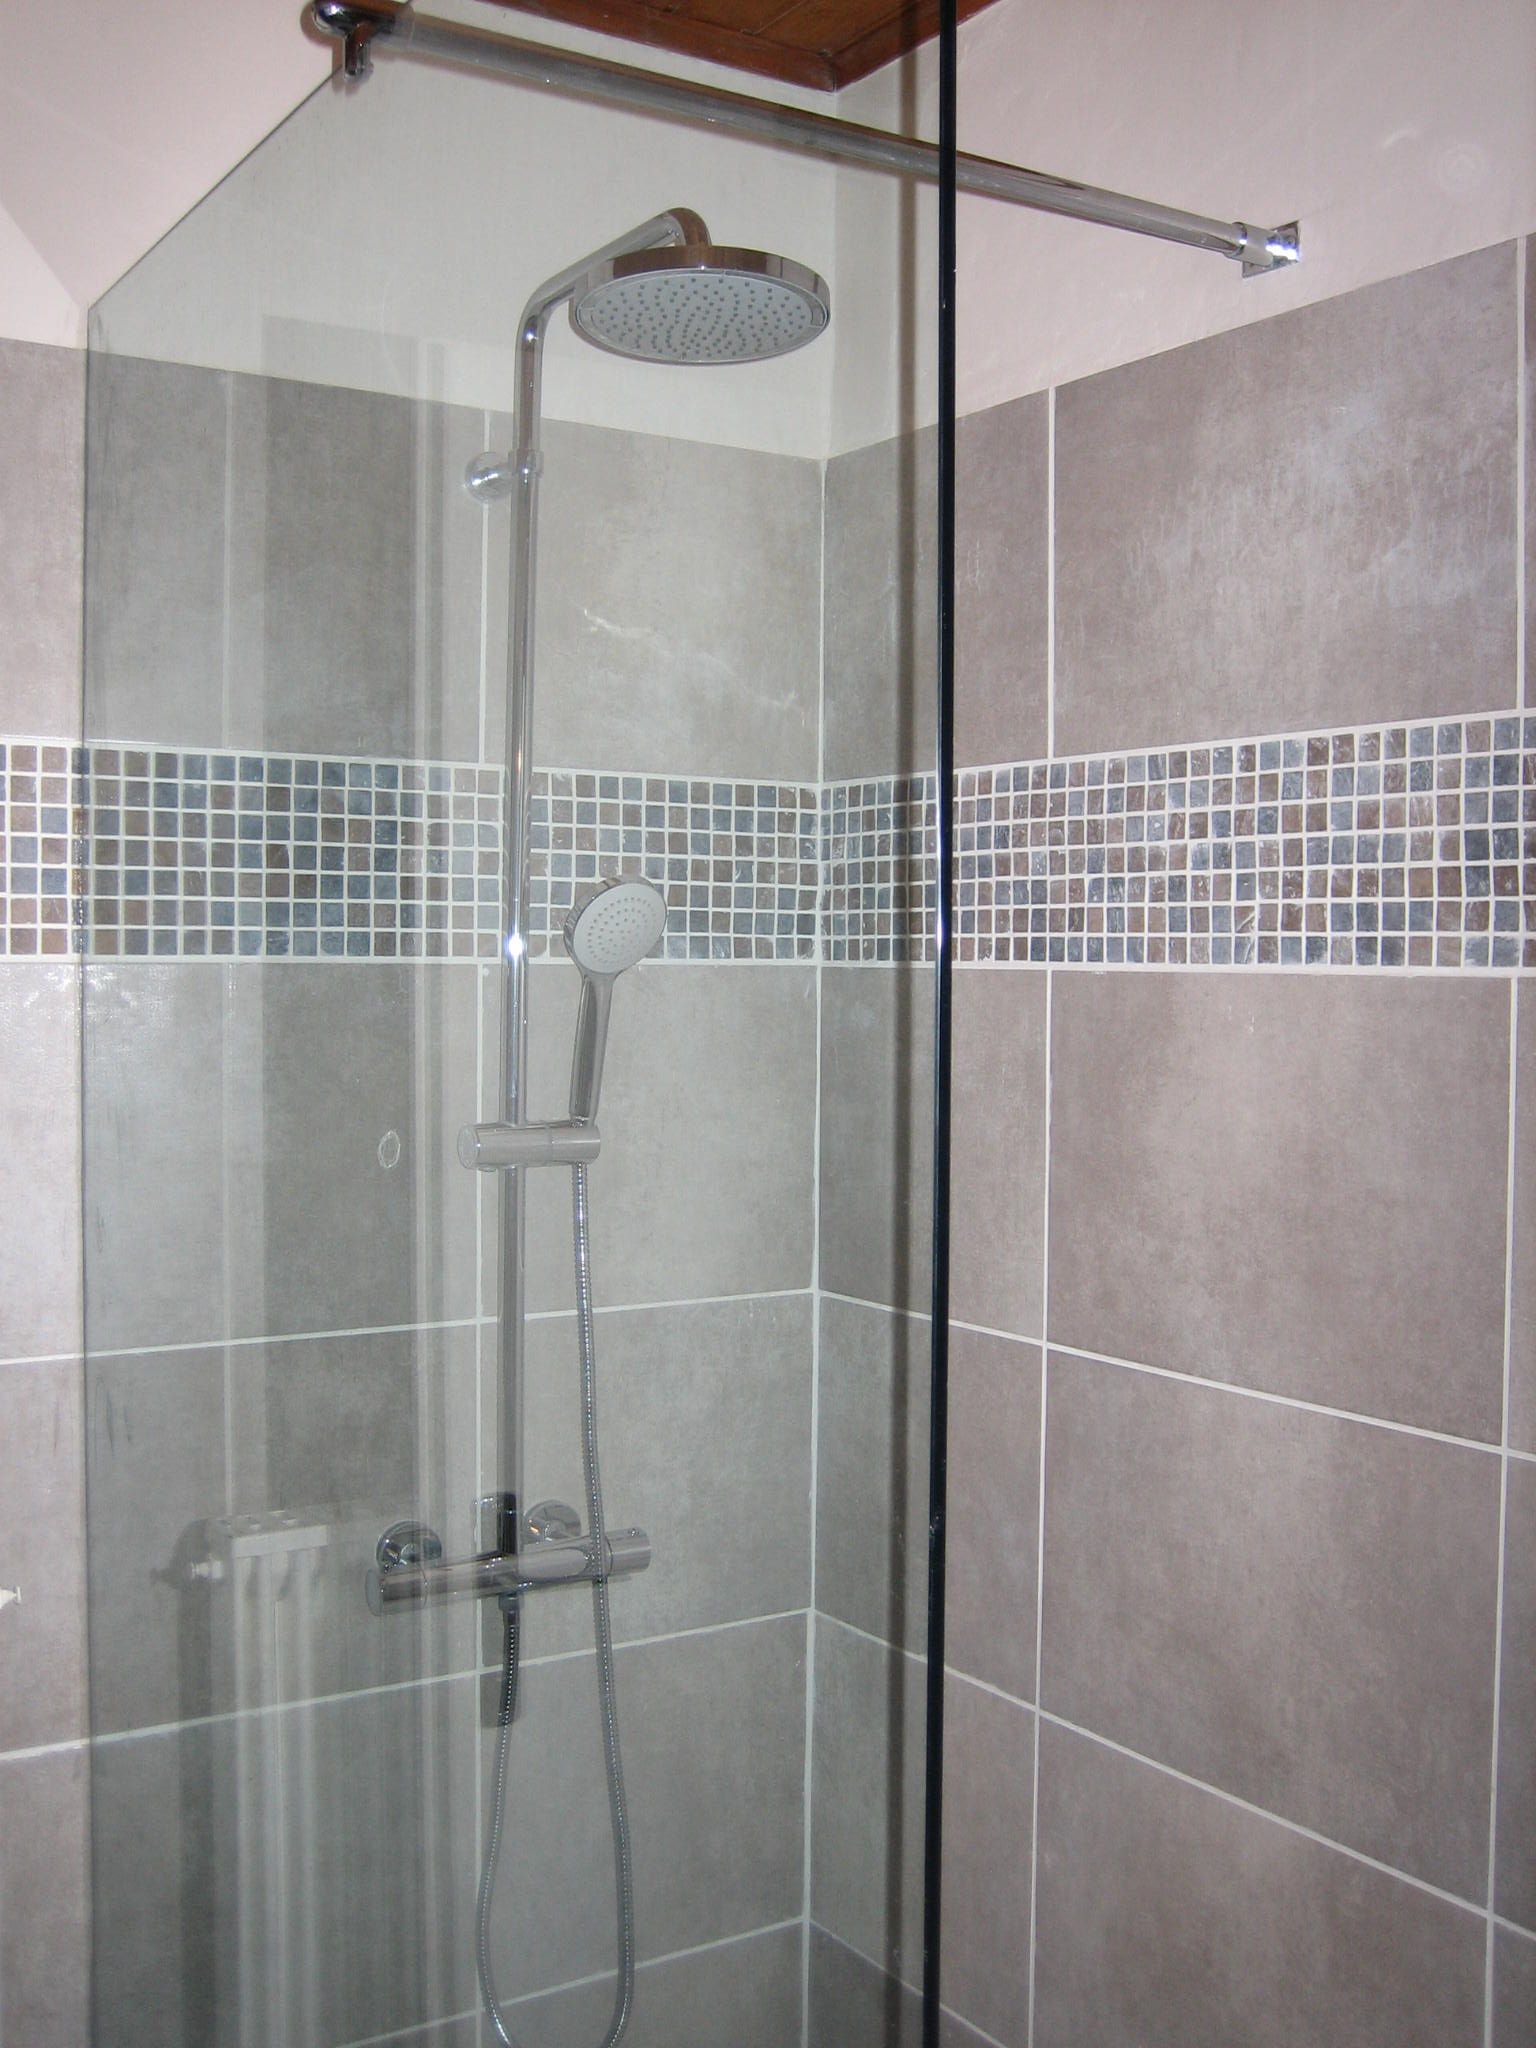 Only One Fixture With Hand Shower And Fixed Head Very Cost - Bathroom shower installation cost